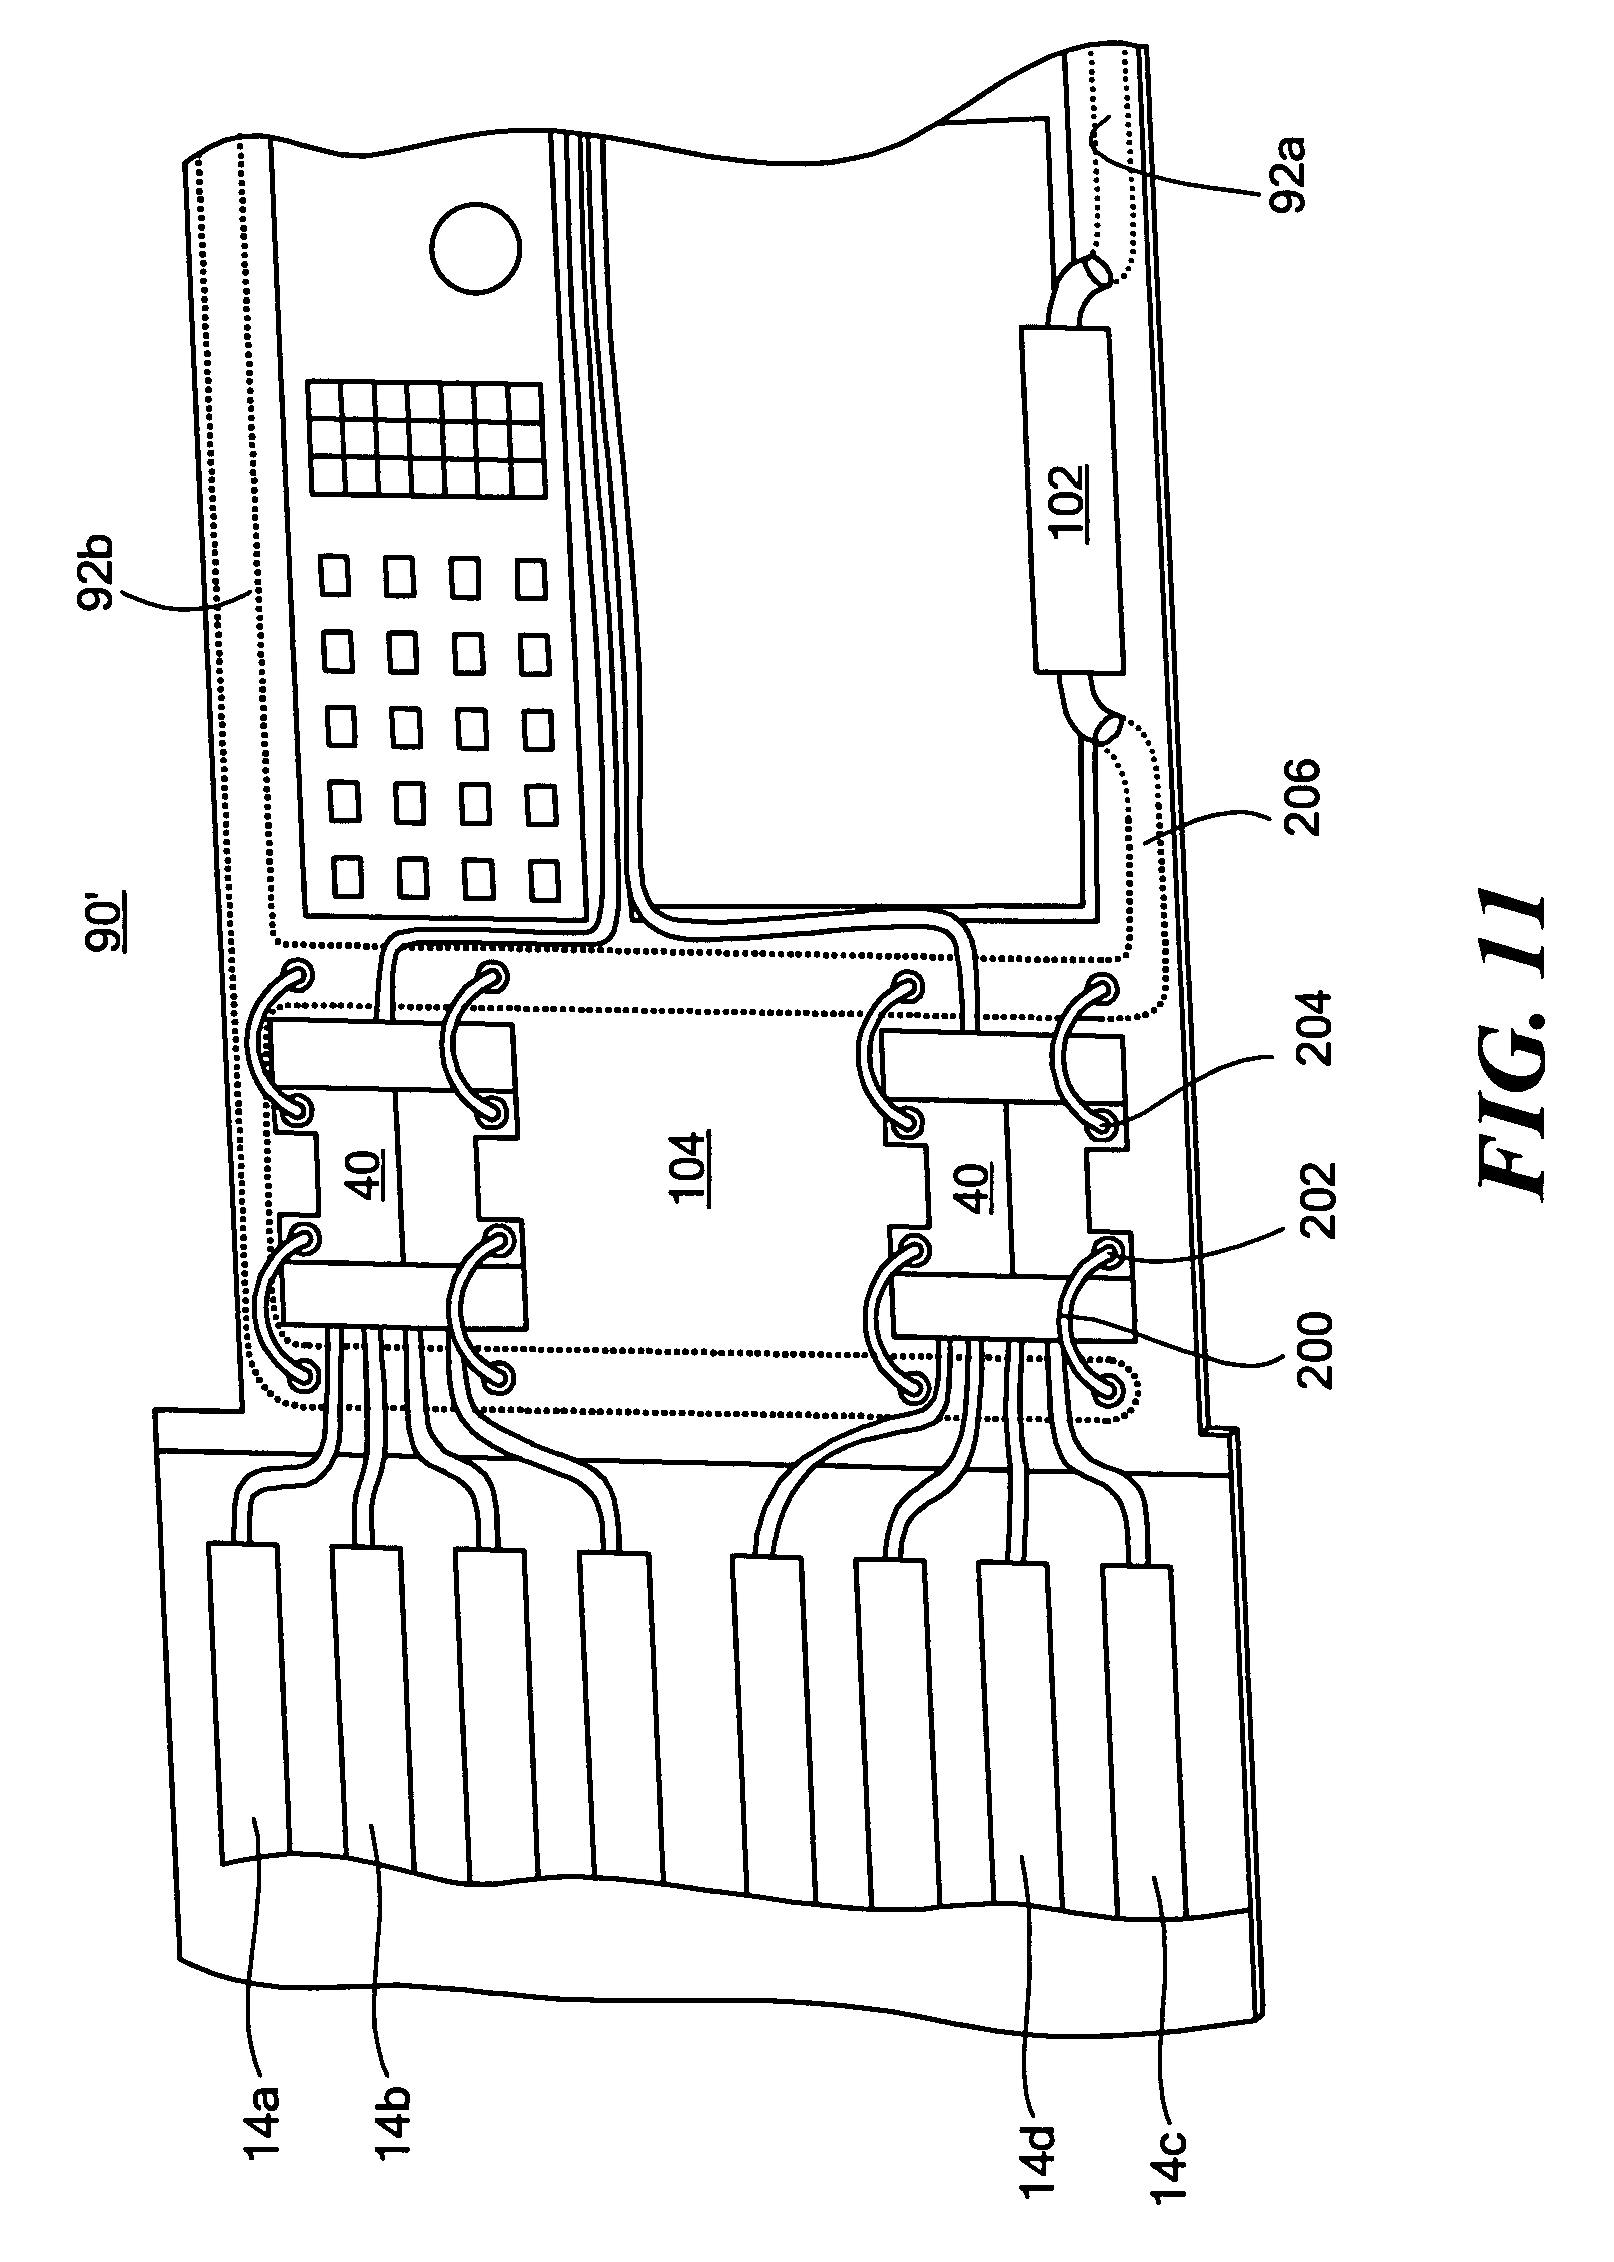 patent us7548424  receive integrated